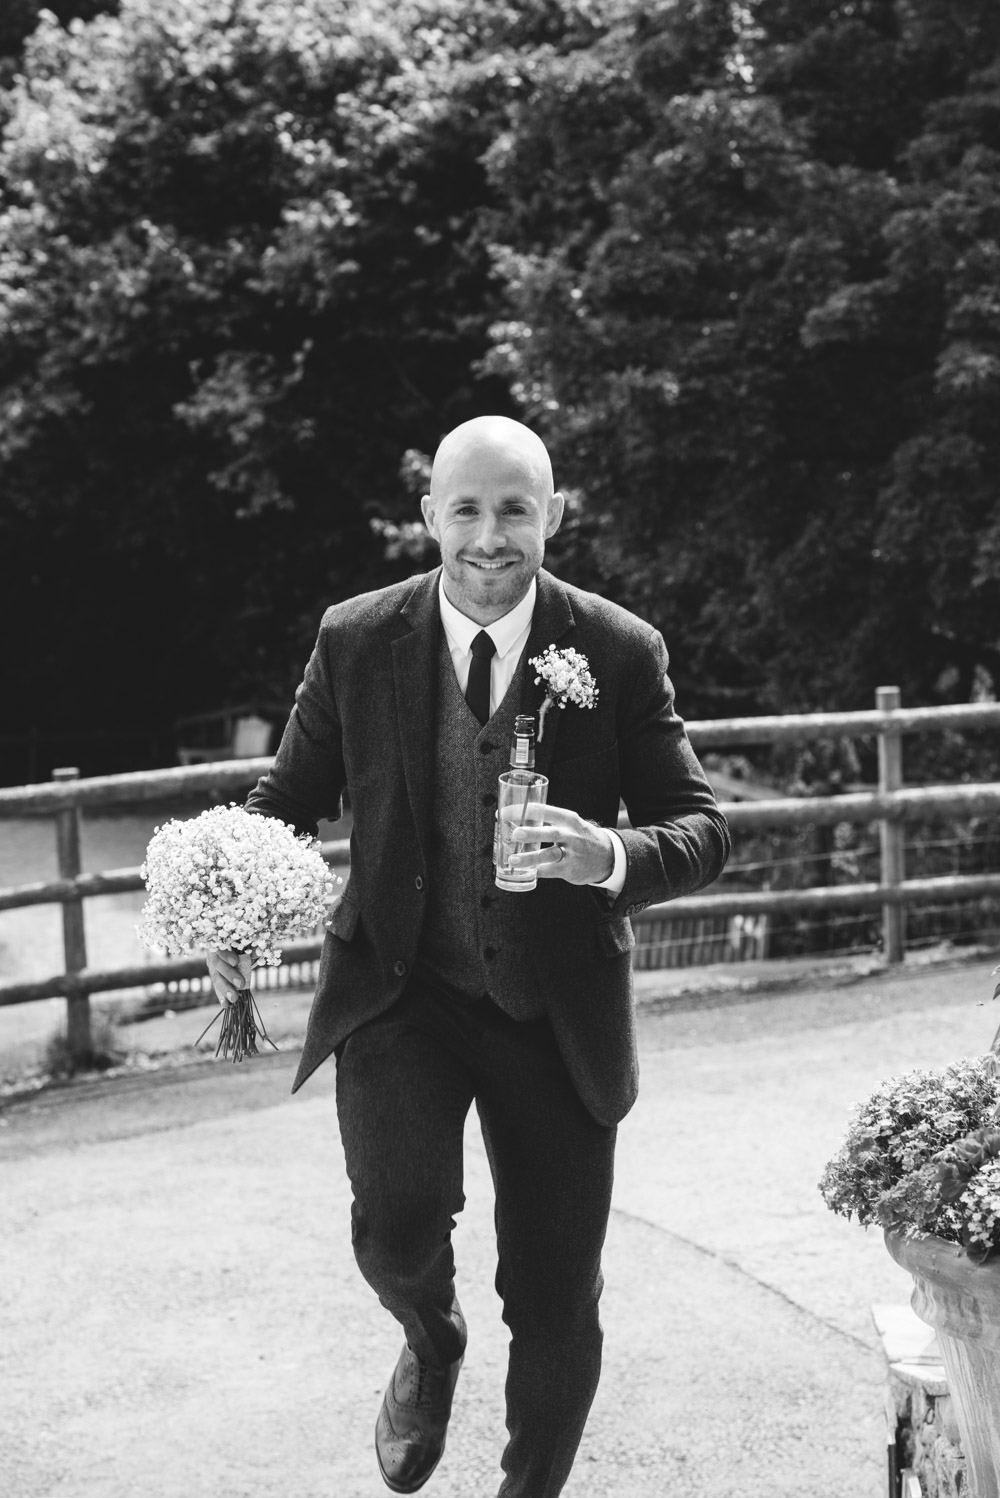 Cotswolds wedding photography byGarazi Birmingham wedding photographer